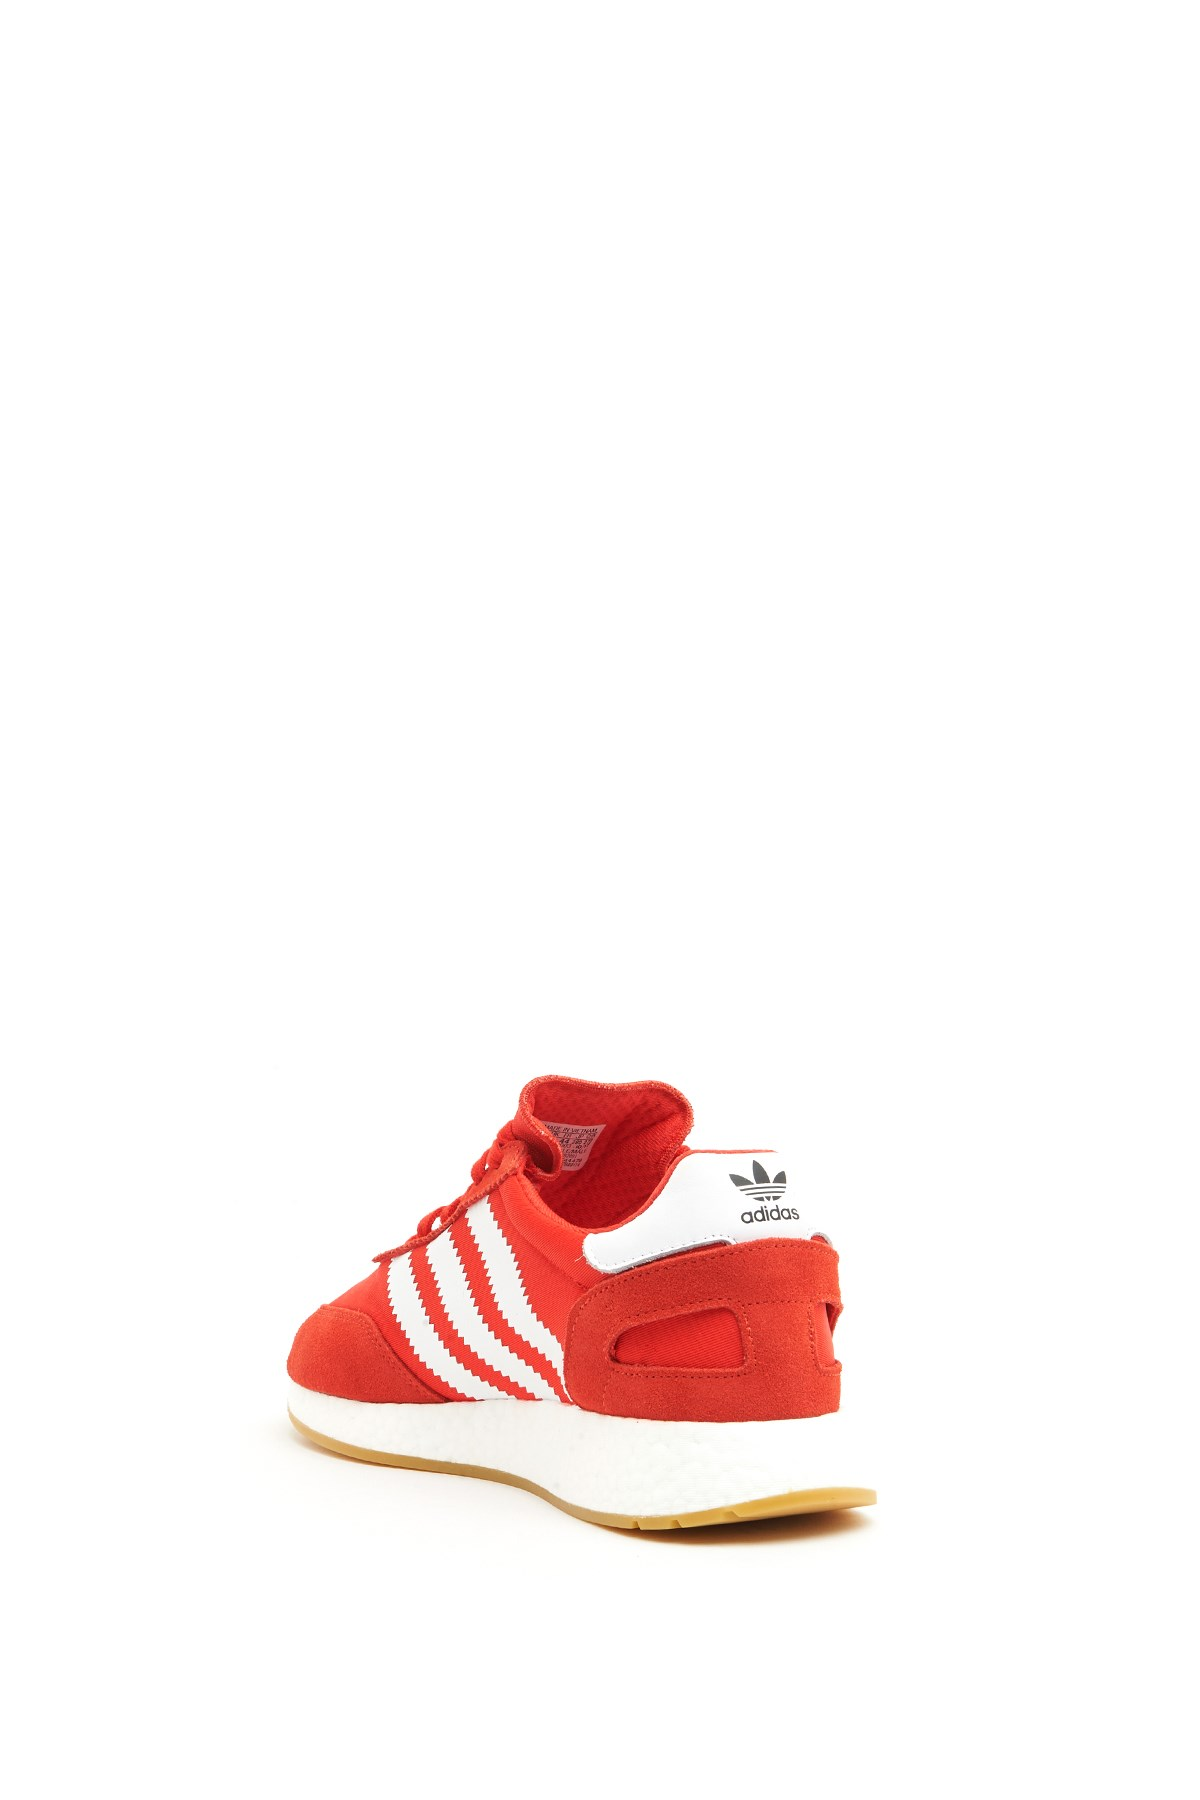 Adidas Originals Iniki Runner Sneakers Available On Julian Fashion